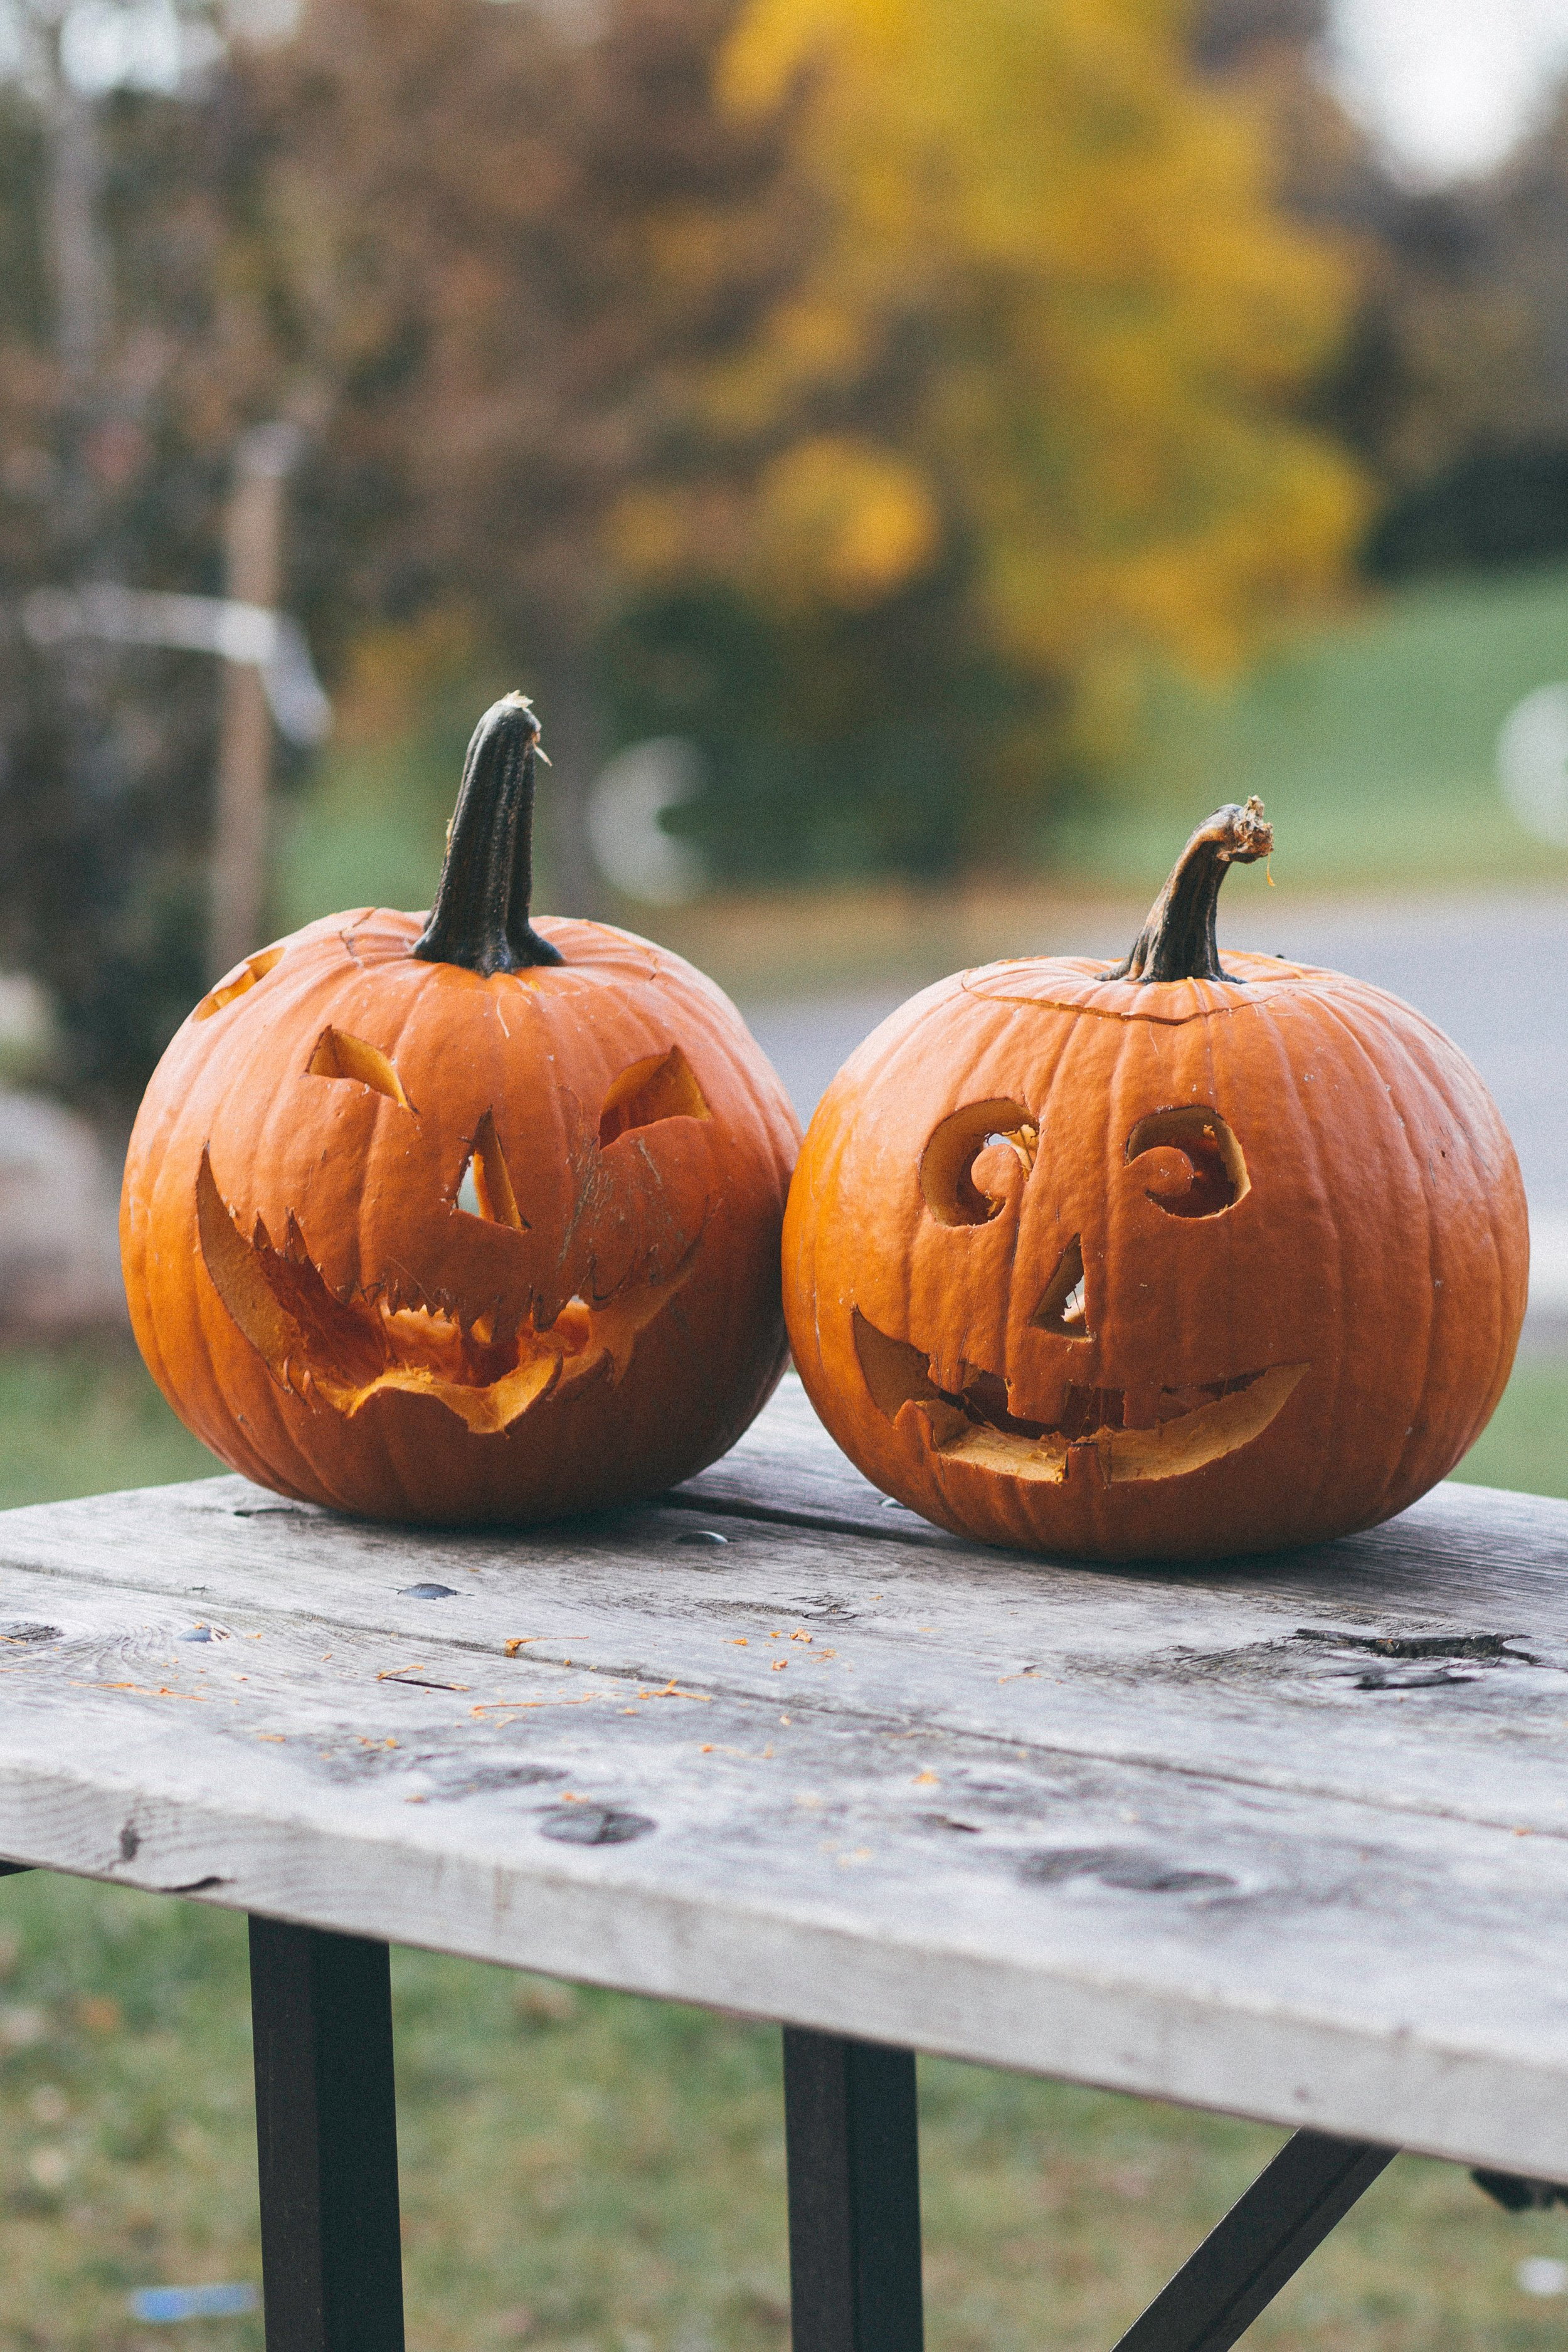 Two carved pumpkins on an outdoor wooden table.